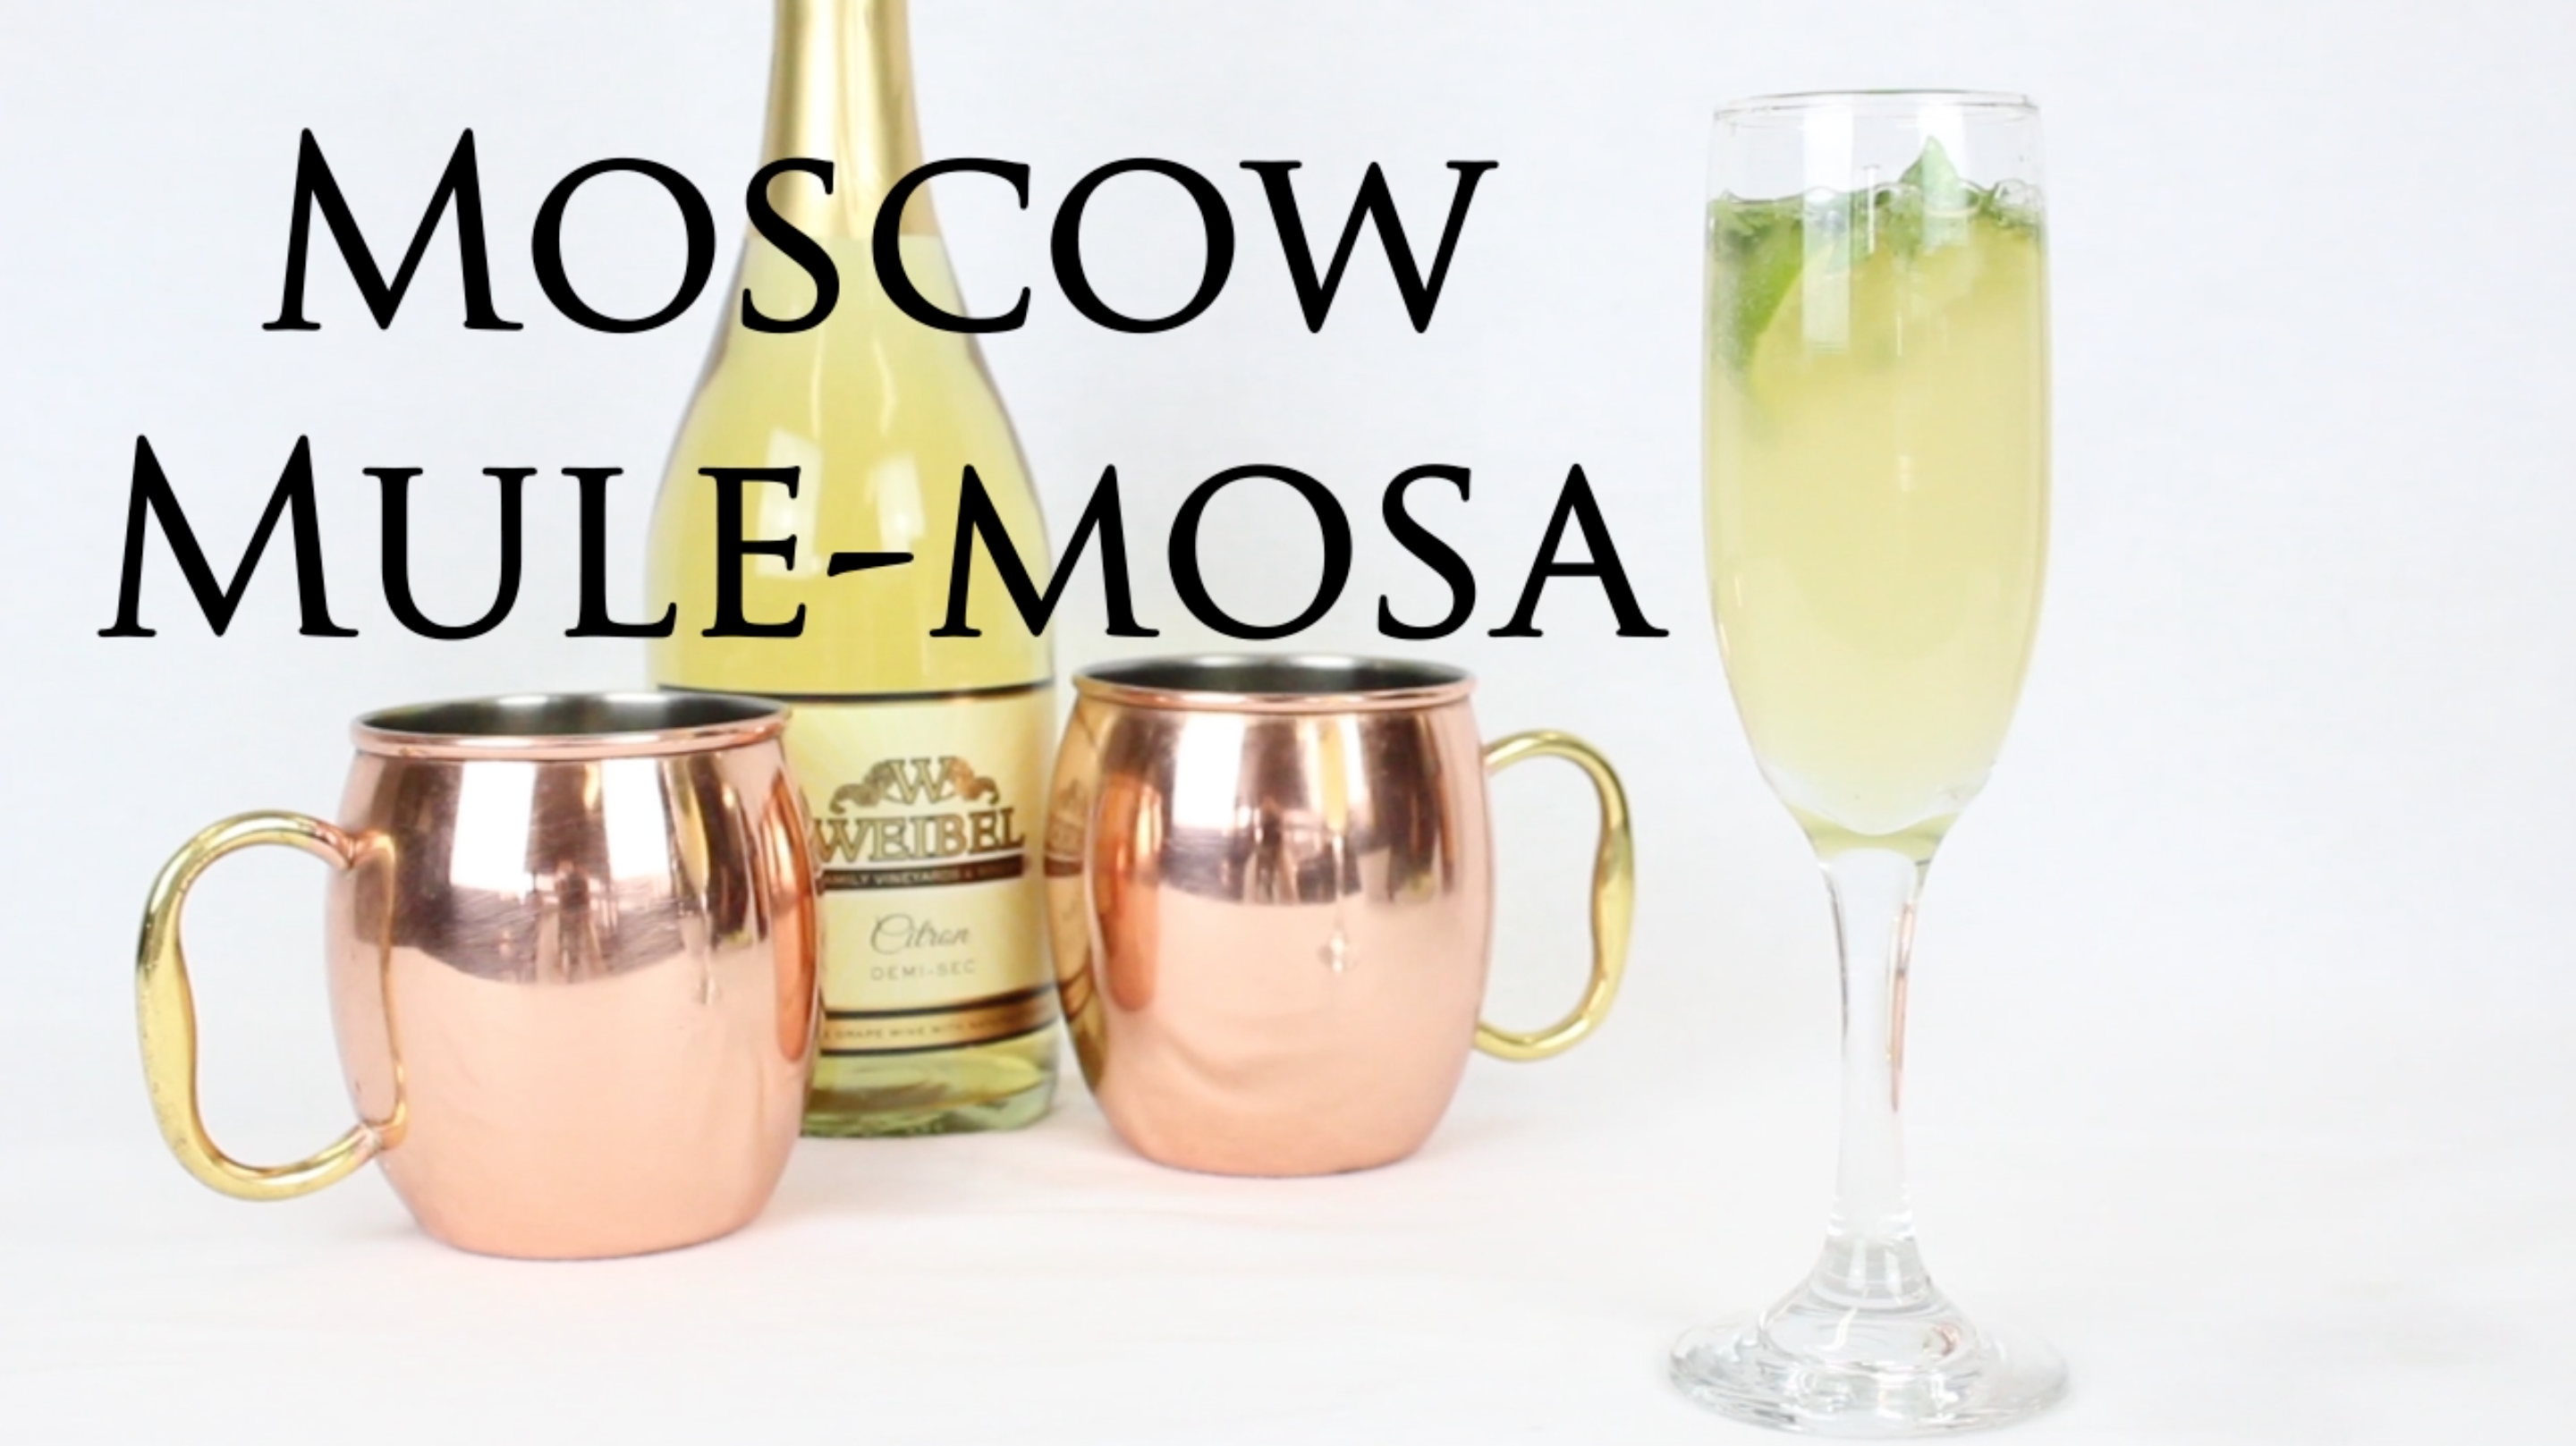 Moscow Mule-Mosa